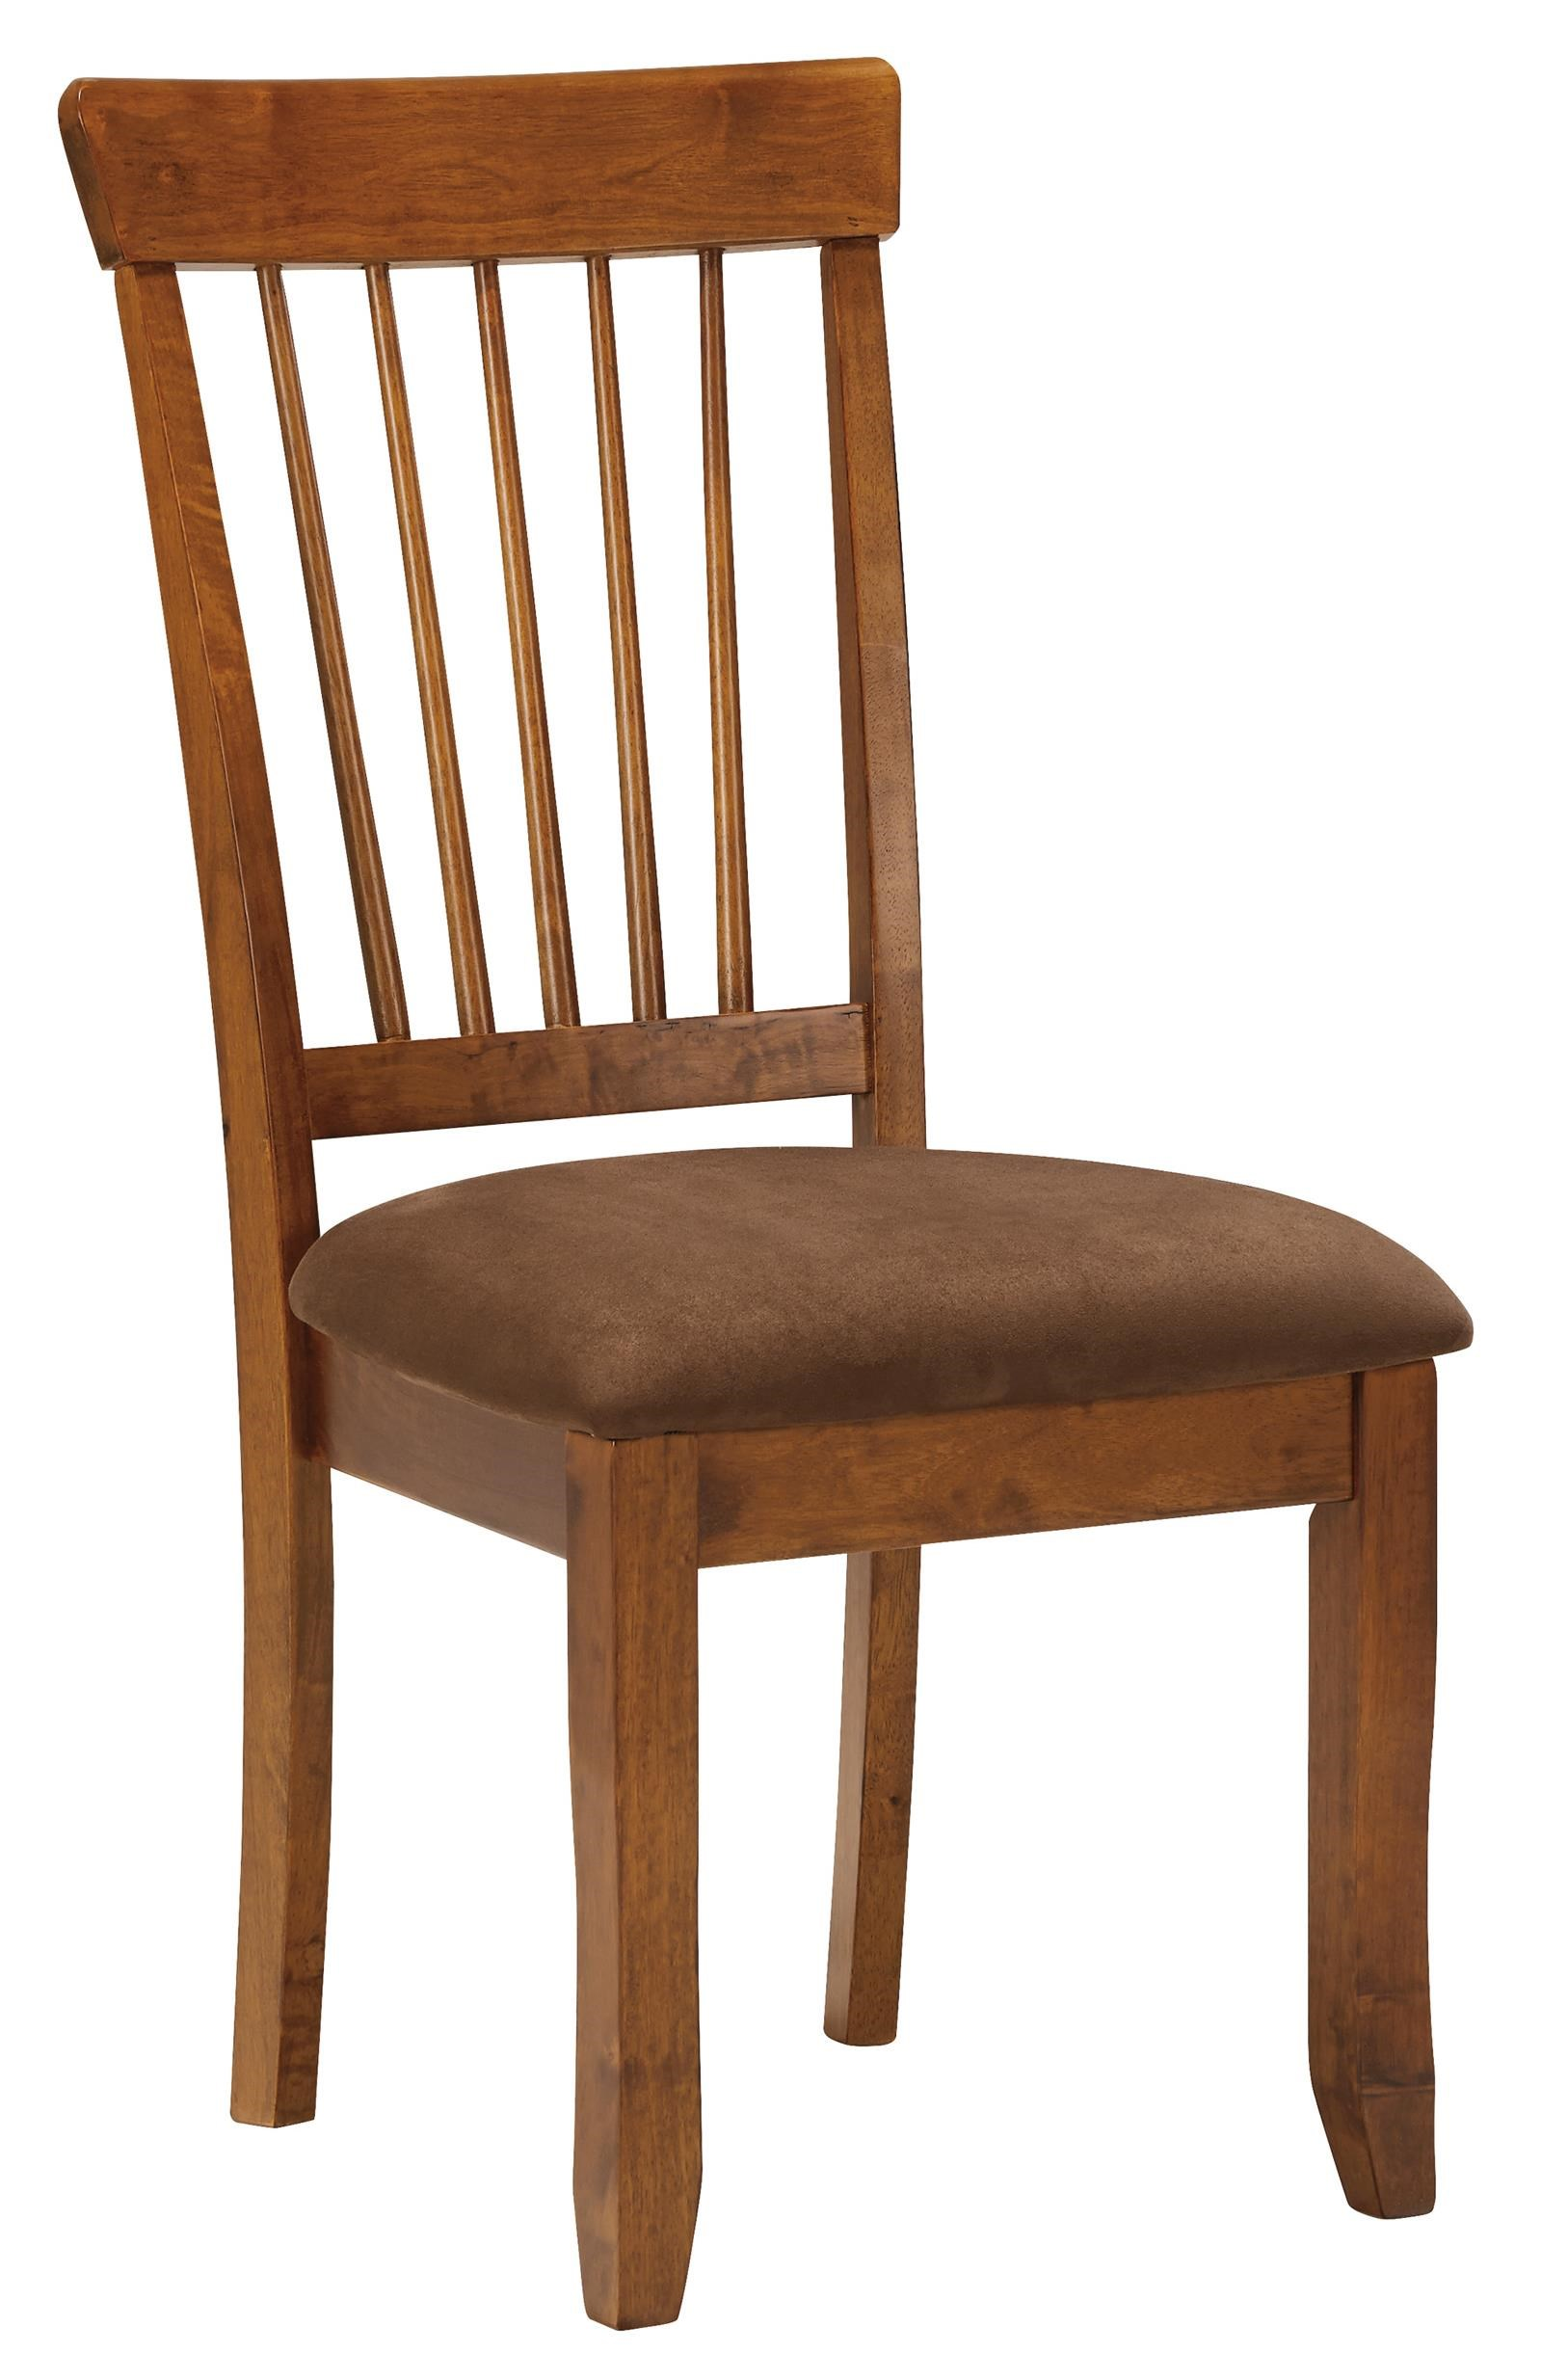 Ashley Furniture Berringer Hickory Stained Side Chair With Upholstered Seat  | Bullard Furniture | Dining Side Chairs Fayetteville, NC